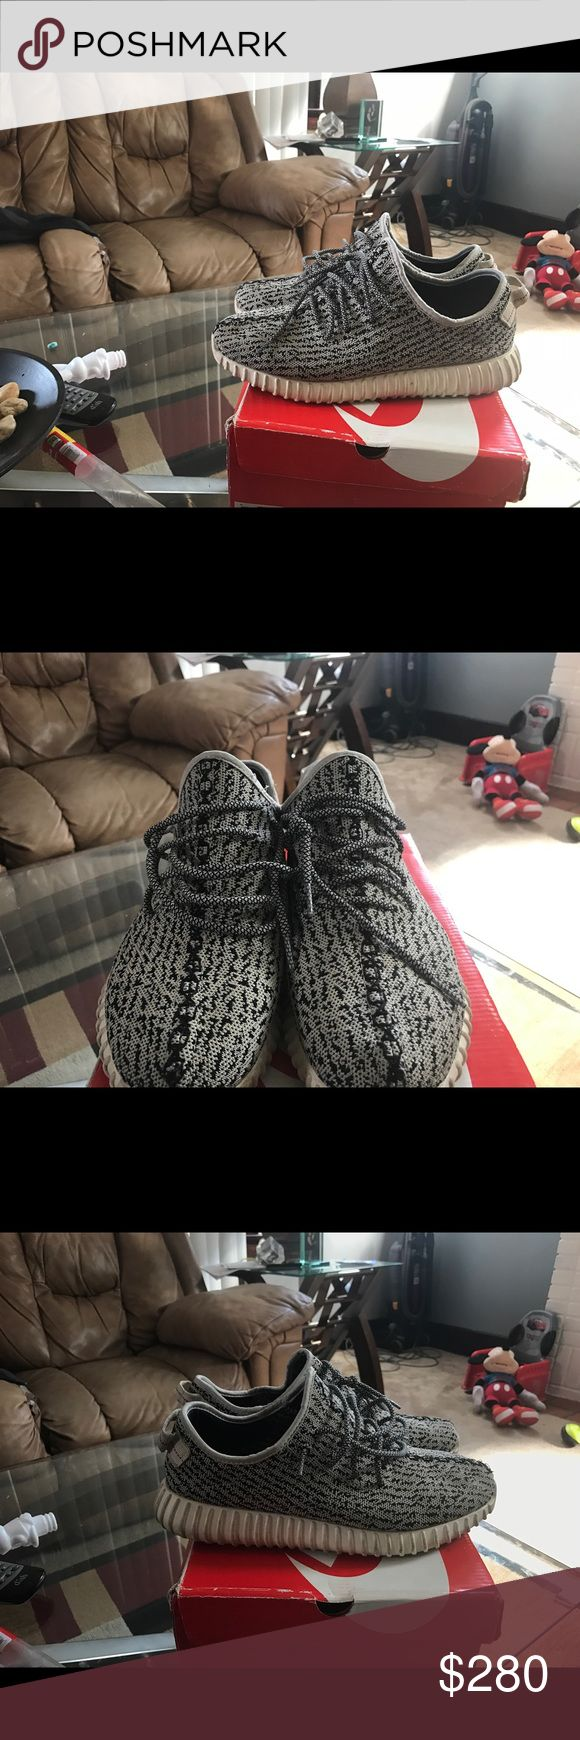 YEEZY 350 turtle doves size 11 Worn 10+ times that's why price isn't sky high Yeezy Shoes Athletic Shoes